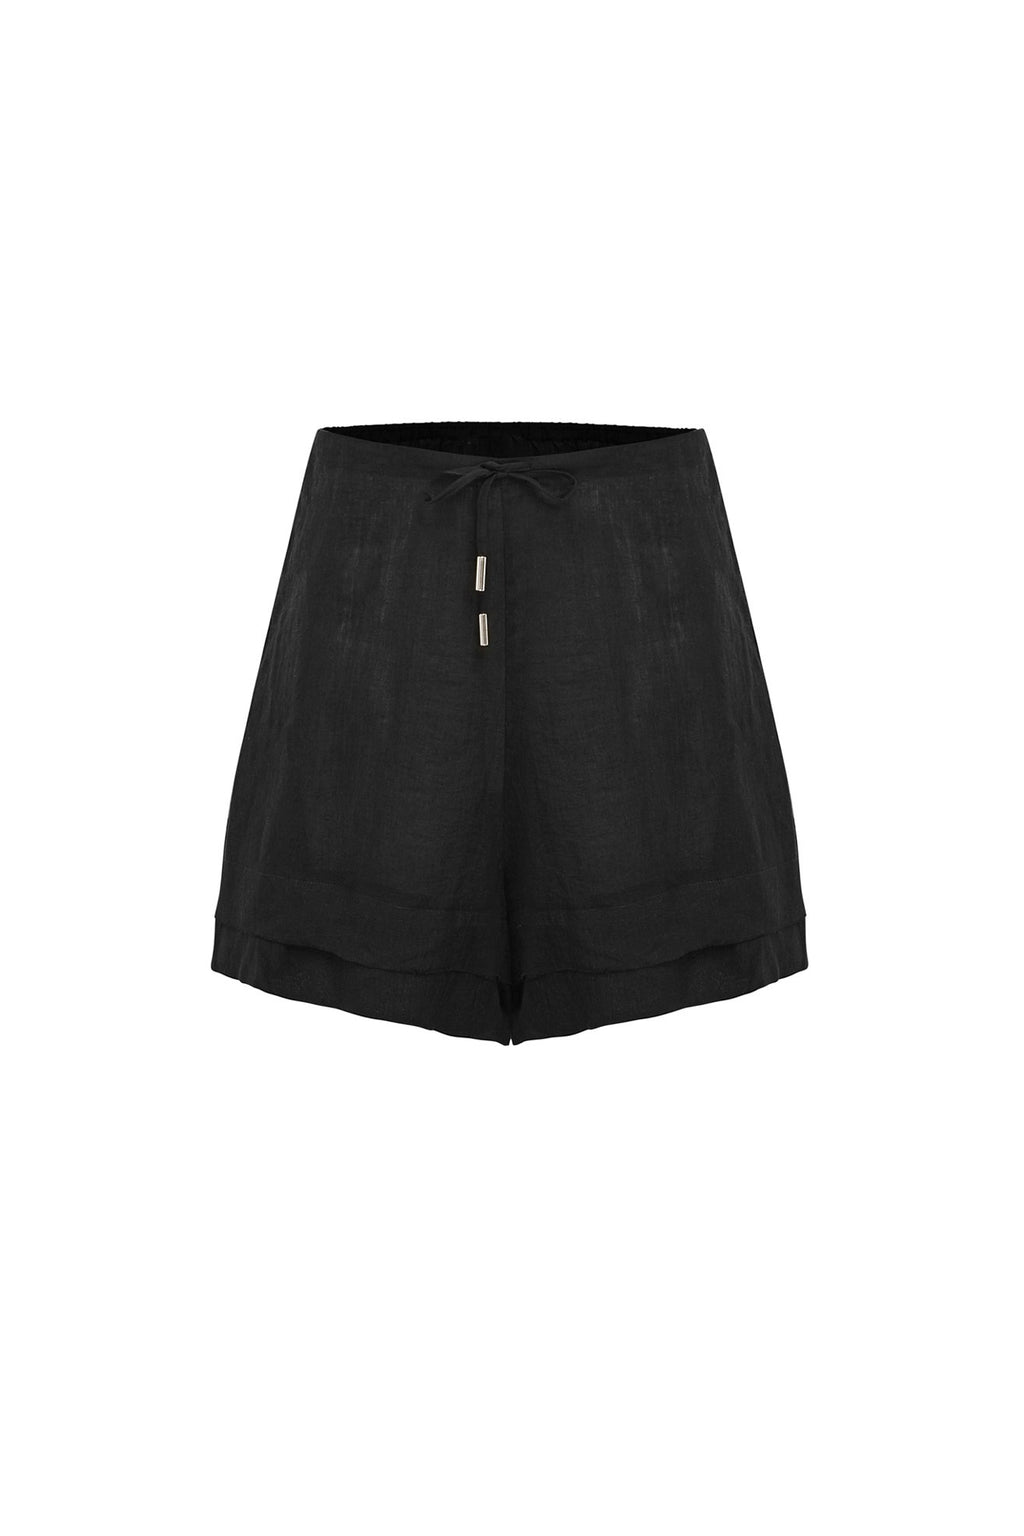 Lucie Short Black